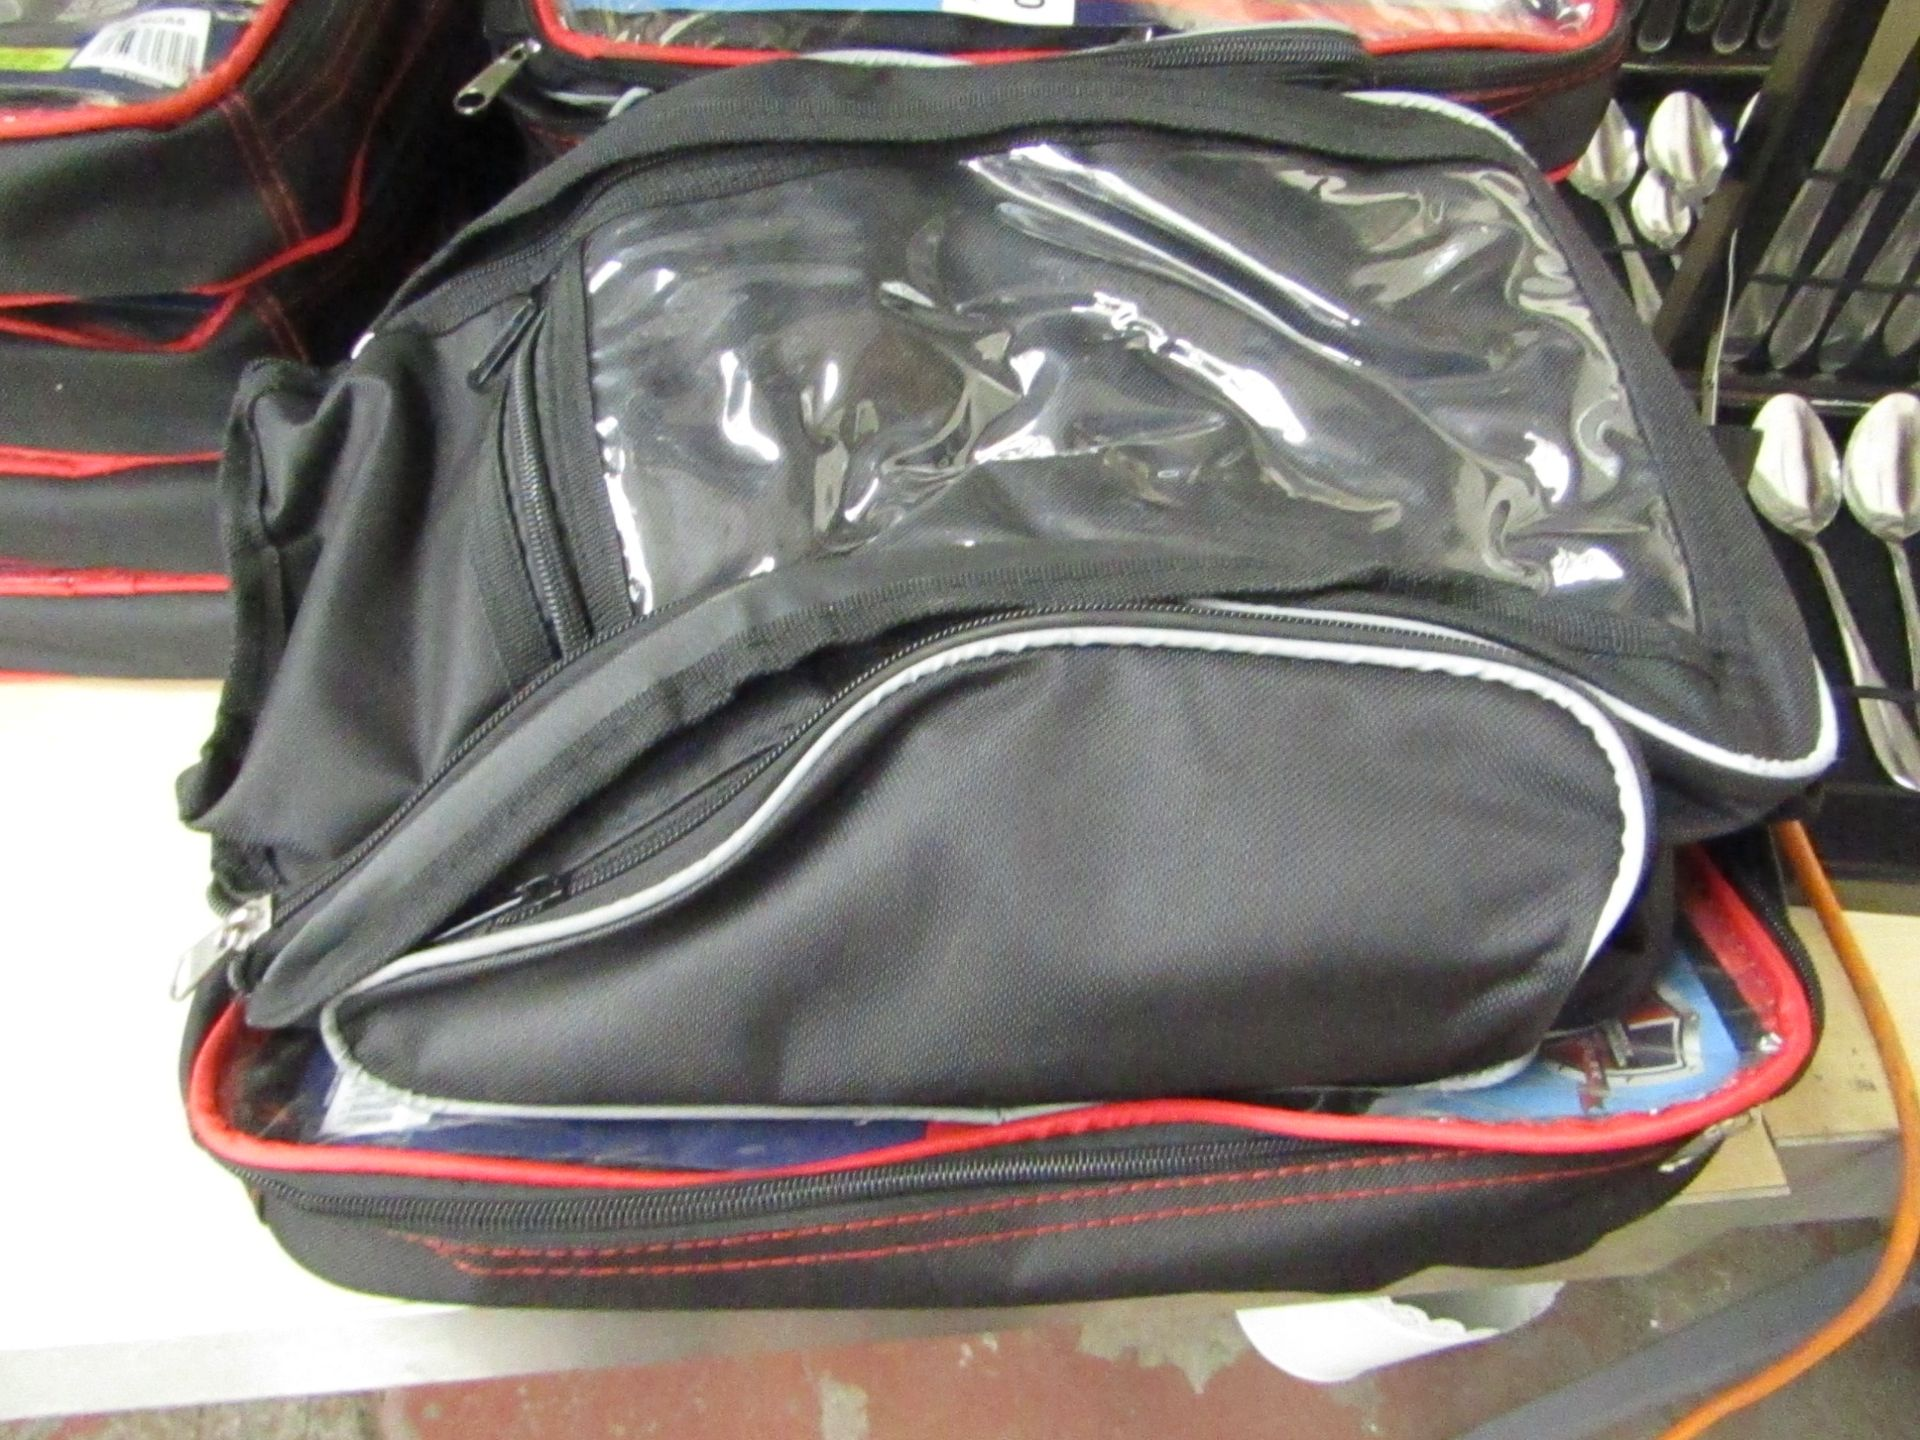 Lot 55 - Autotechnica Motorbike tank bag, with 600 Denier Polyester 40cm x 14cm x 21cm new and packaged